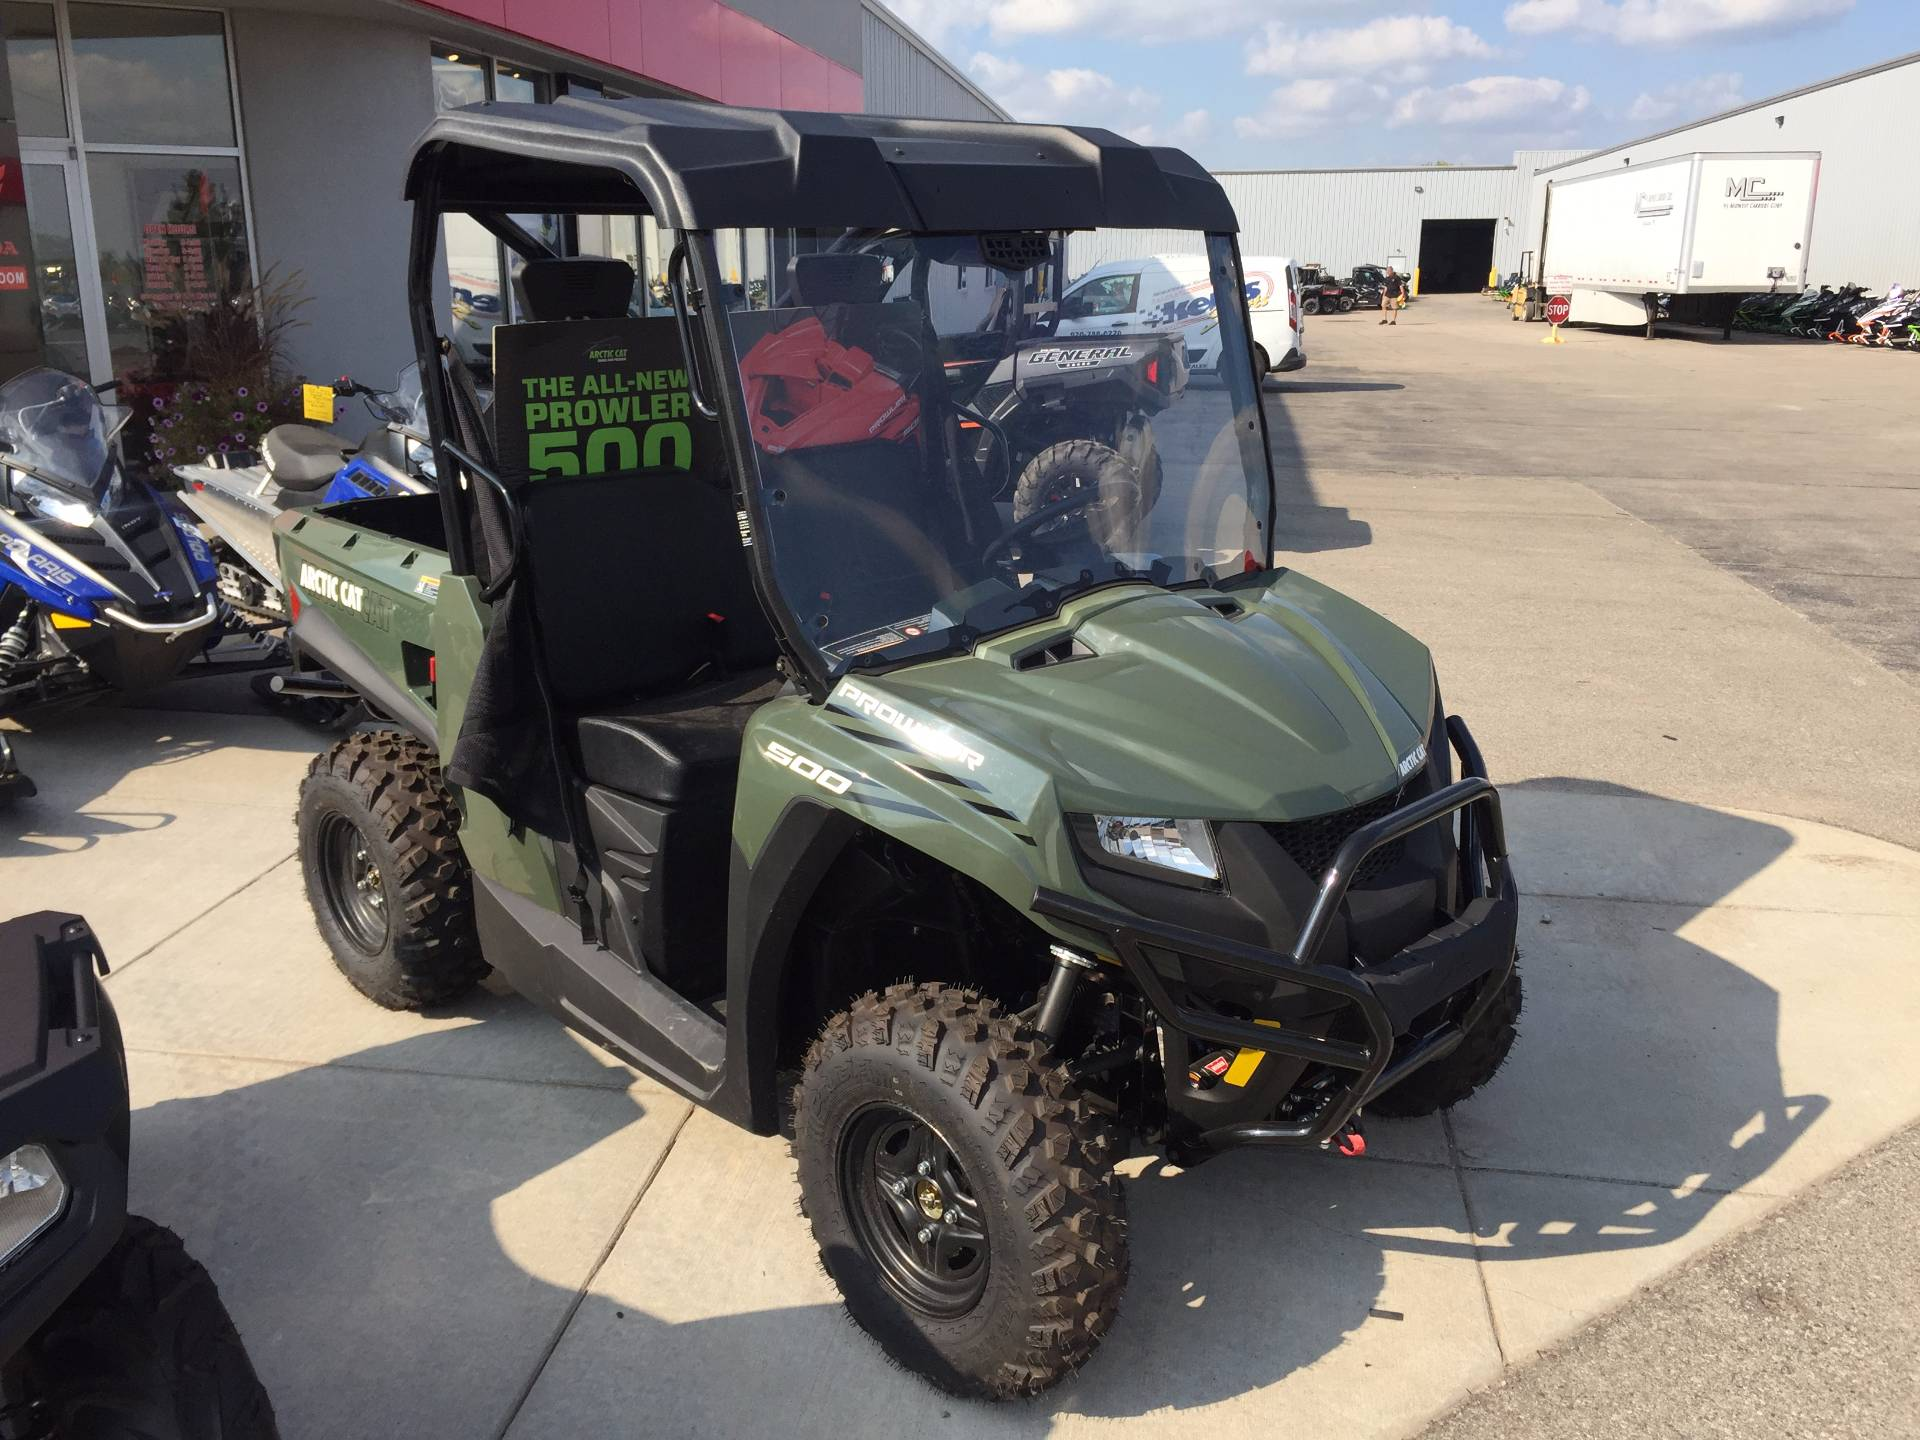 2017 Prowler 500